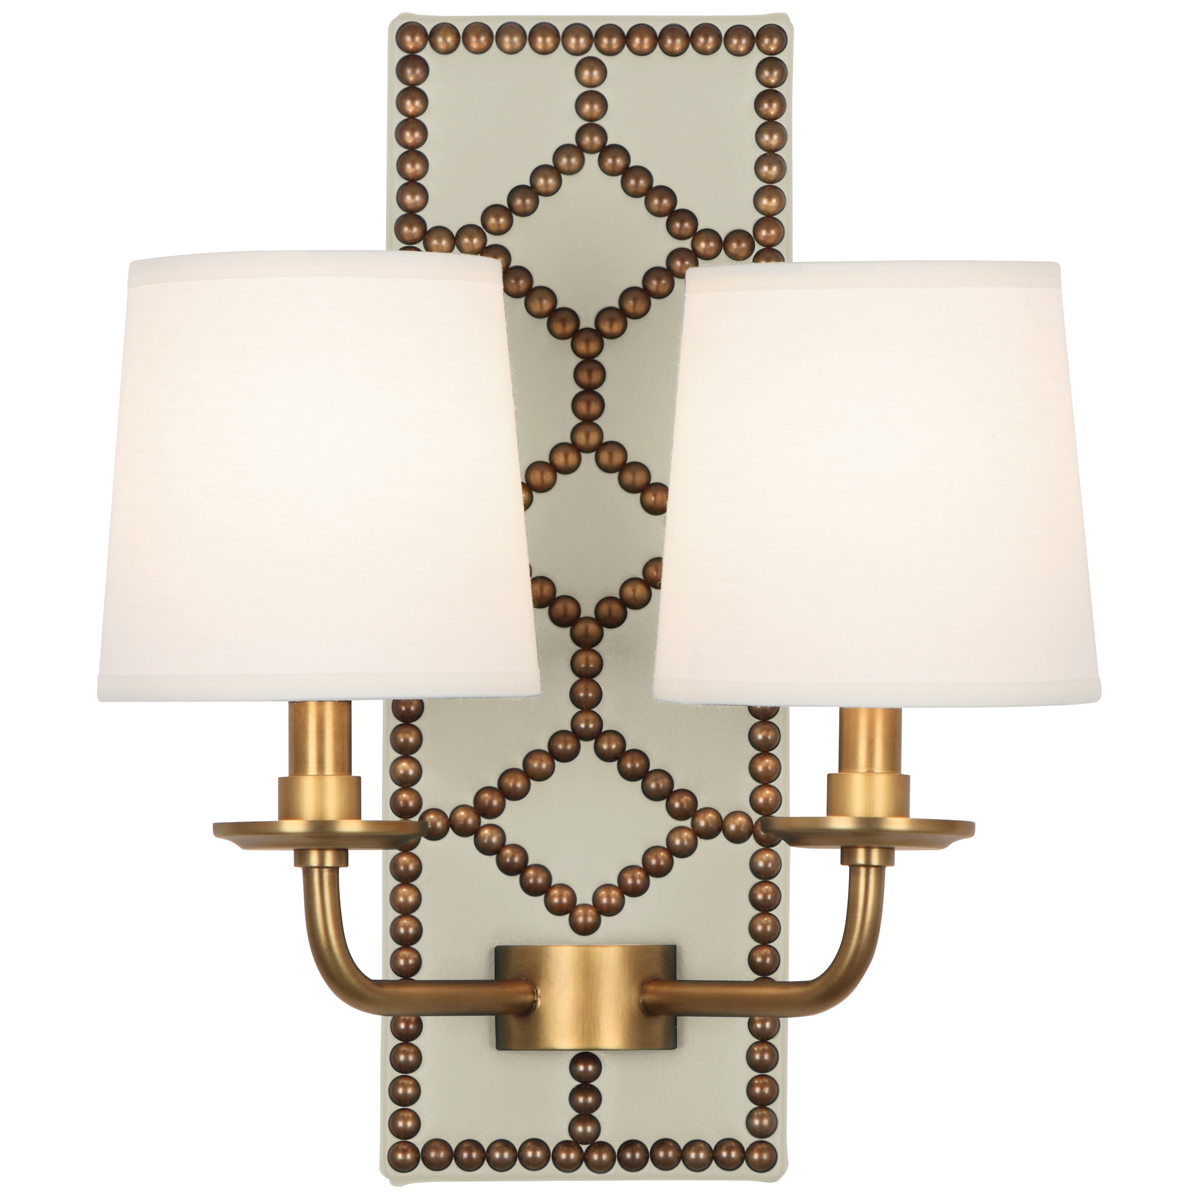 Williamsburg Lightfoot Wall Sconce Style #1032